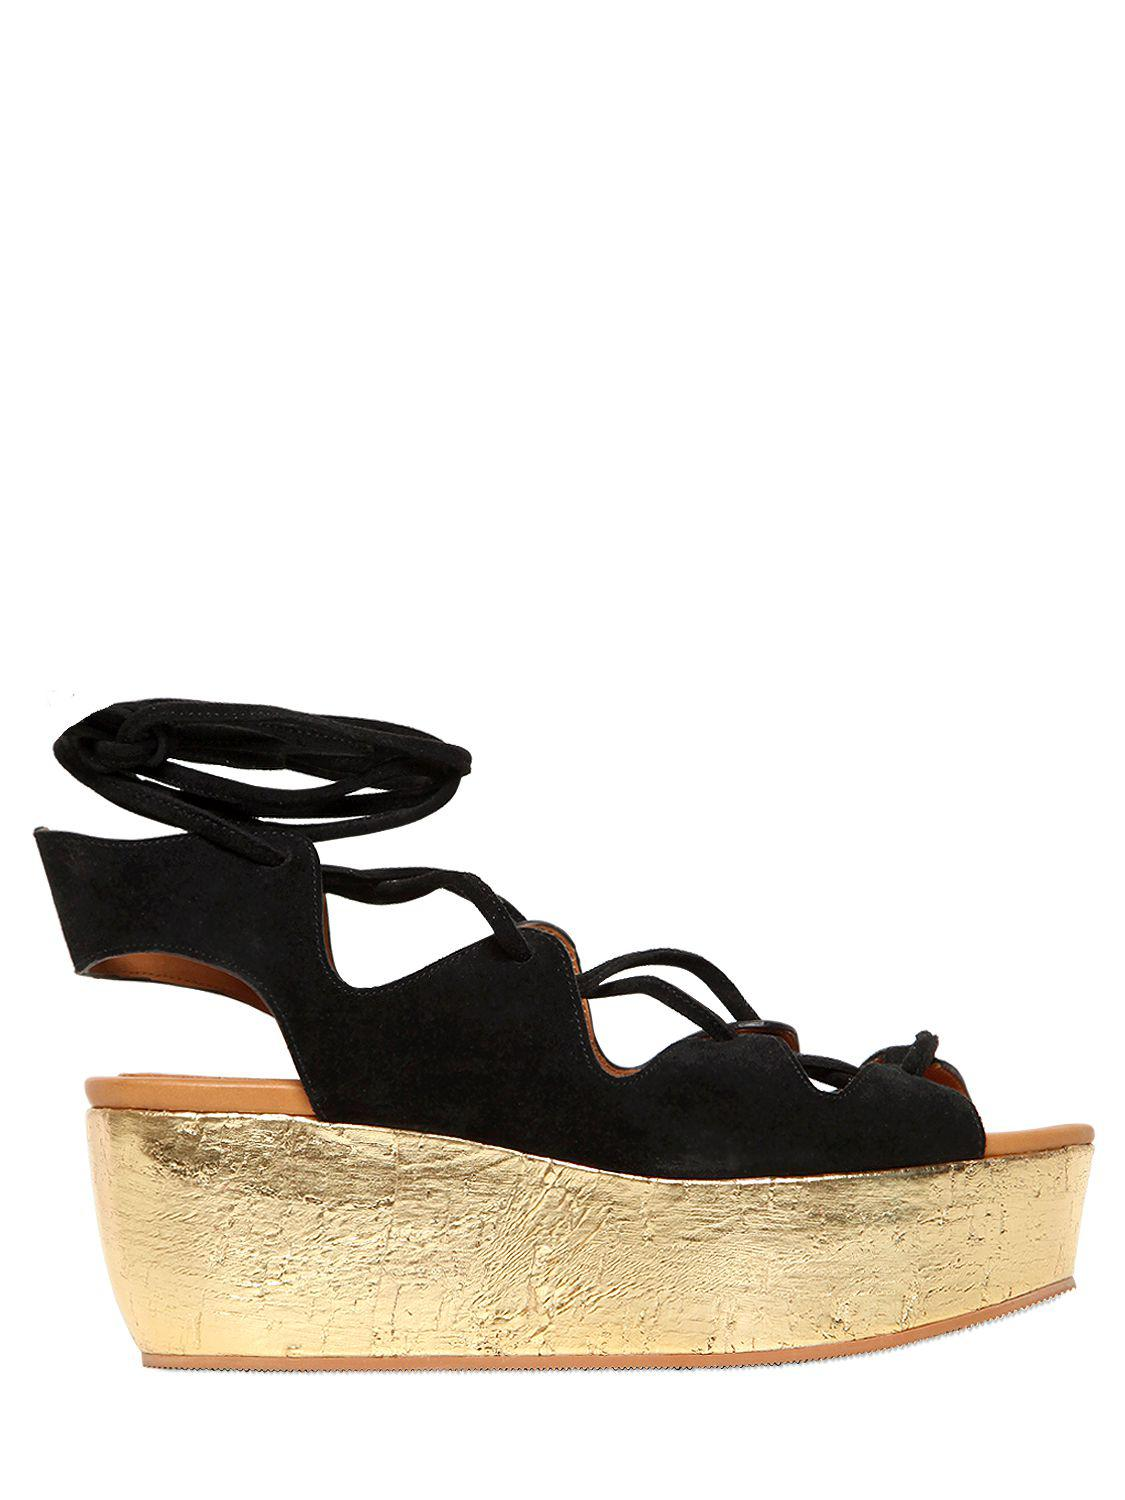 7555a19440f6 See By Chloé - Black 70mm Suede Lace-up Wedges - Lyst. View fullscreen